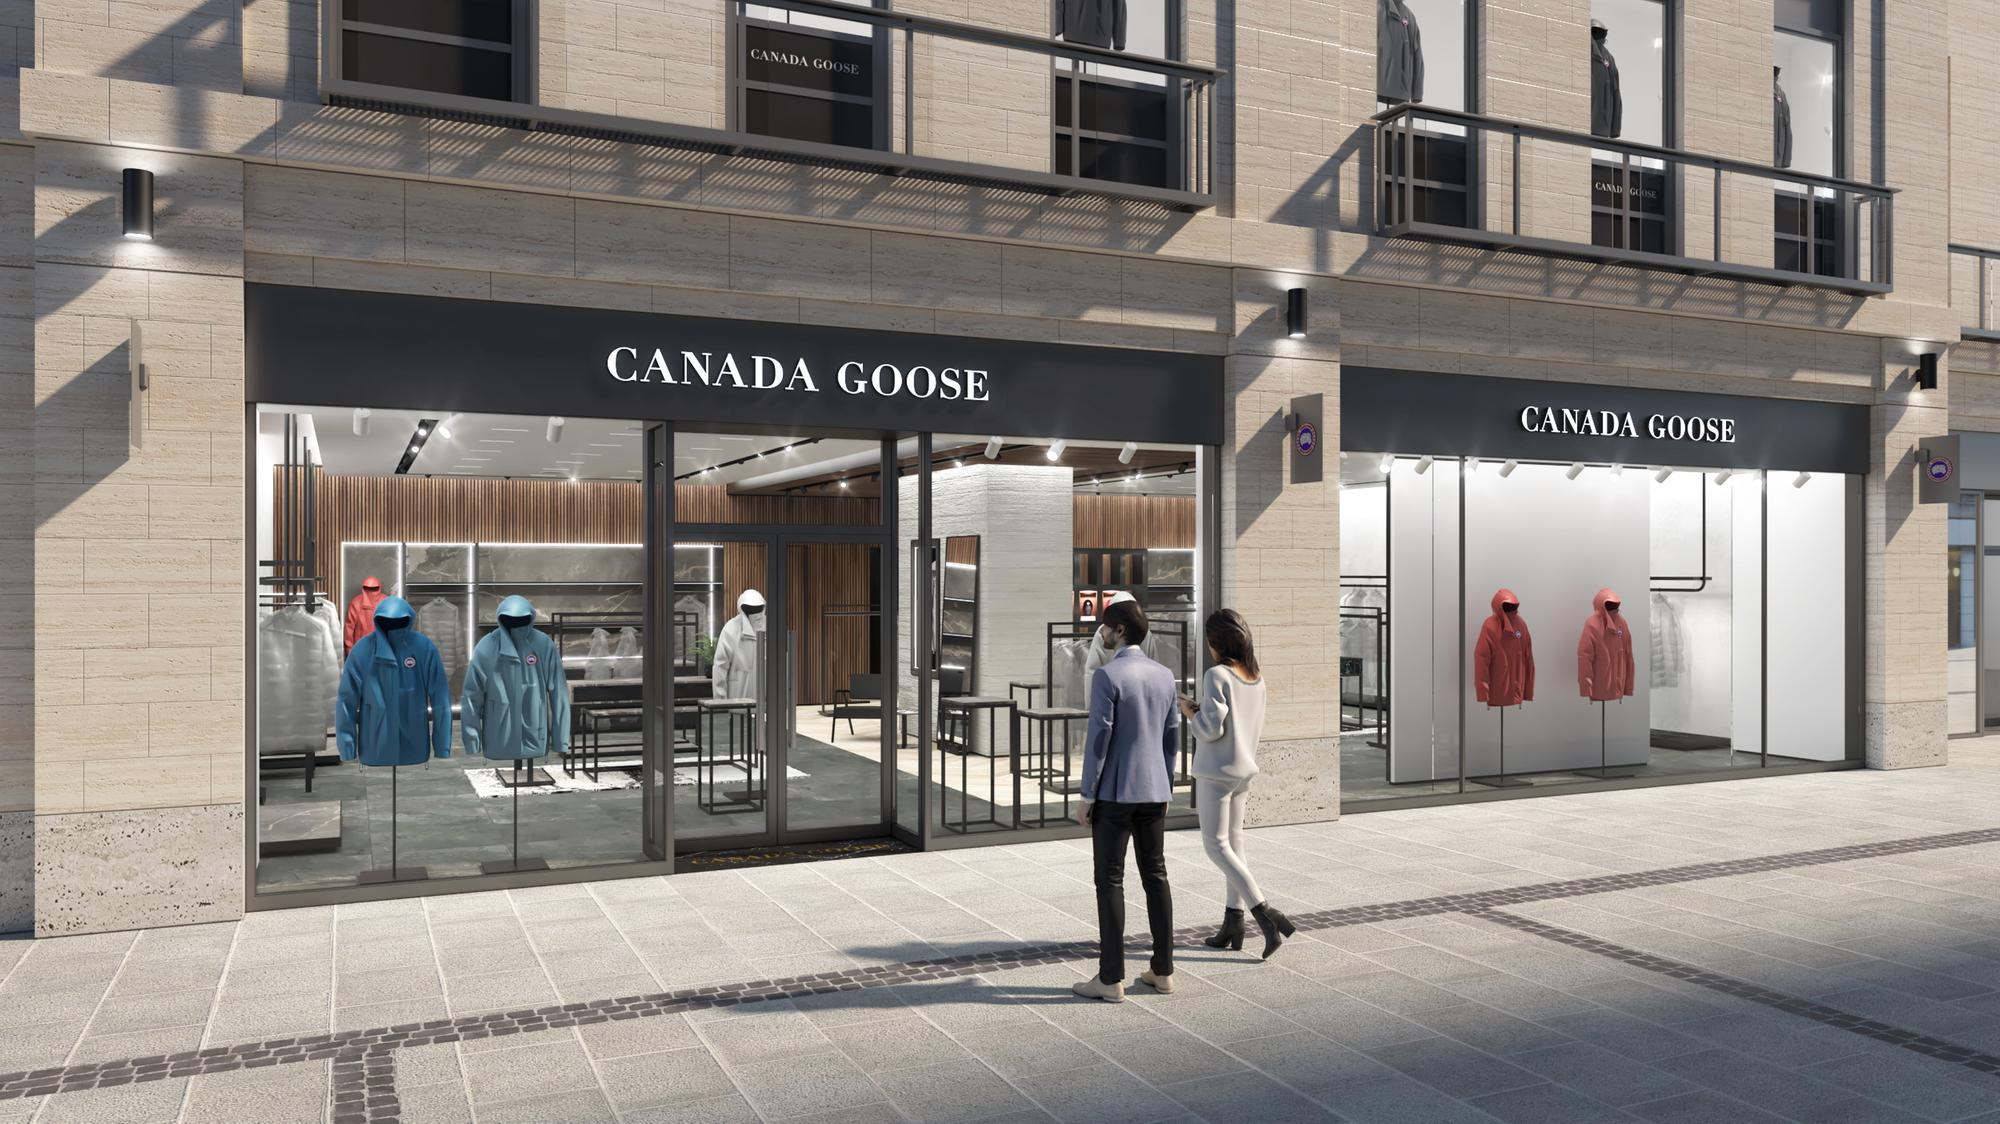 Canada Goose has announced that a new shop is set to open in Edinburgh later this year.